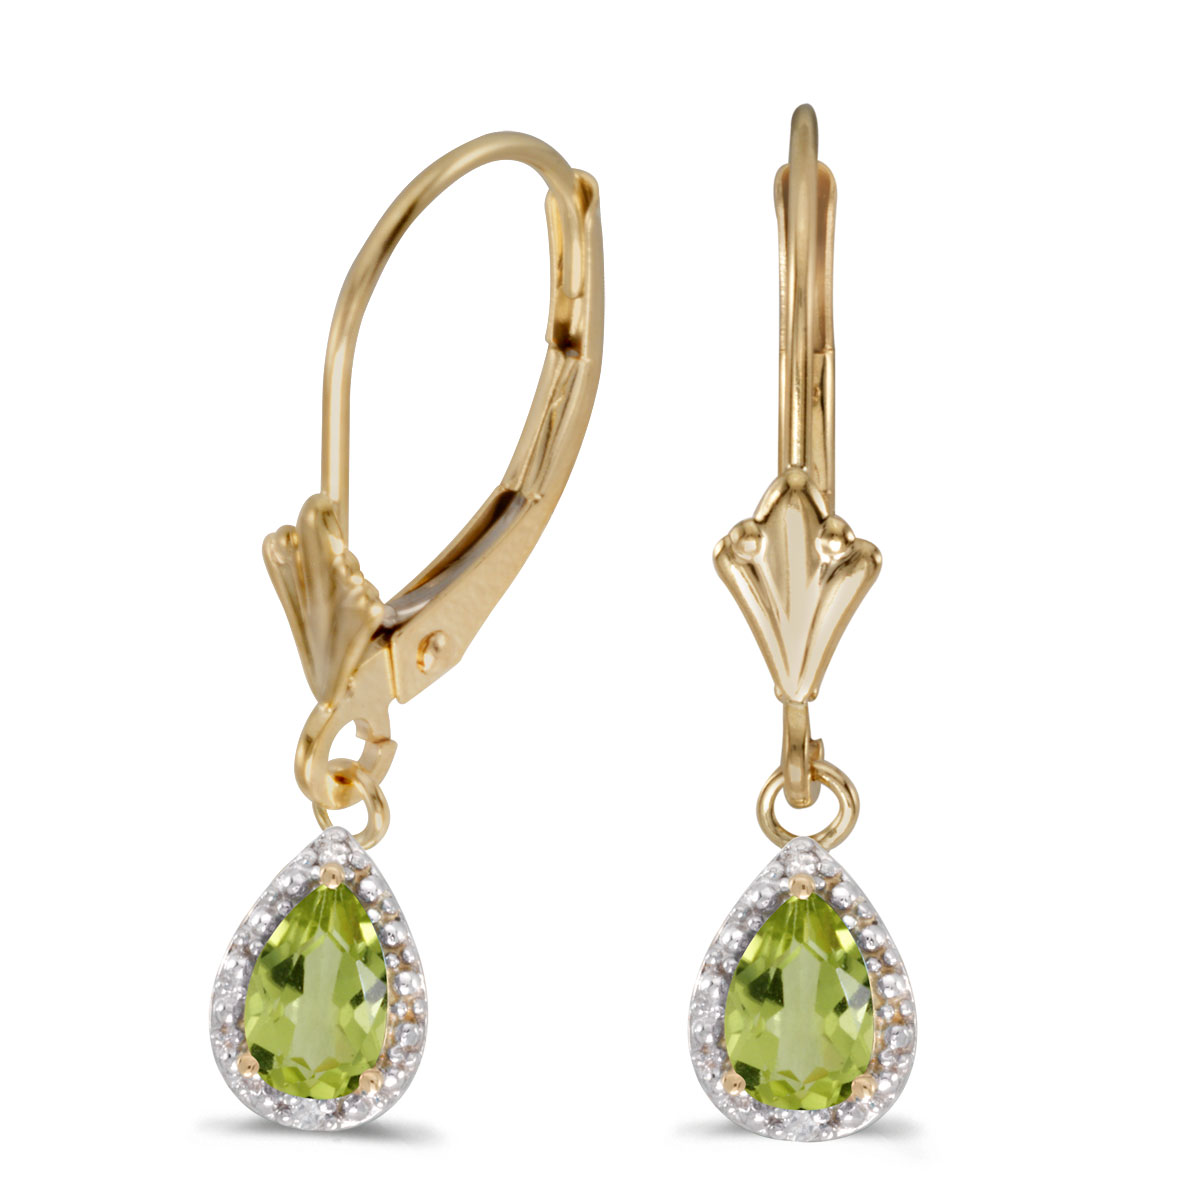 6x4 mm pear peridot dangle in 10k yellow gold with shimmering diamond accents.